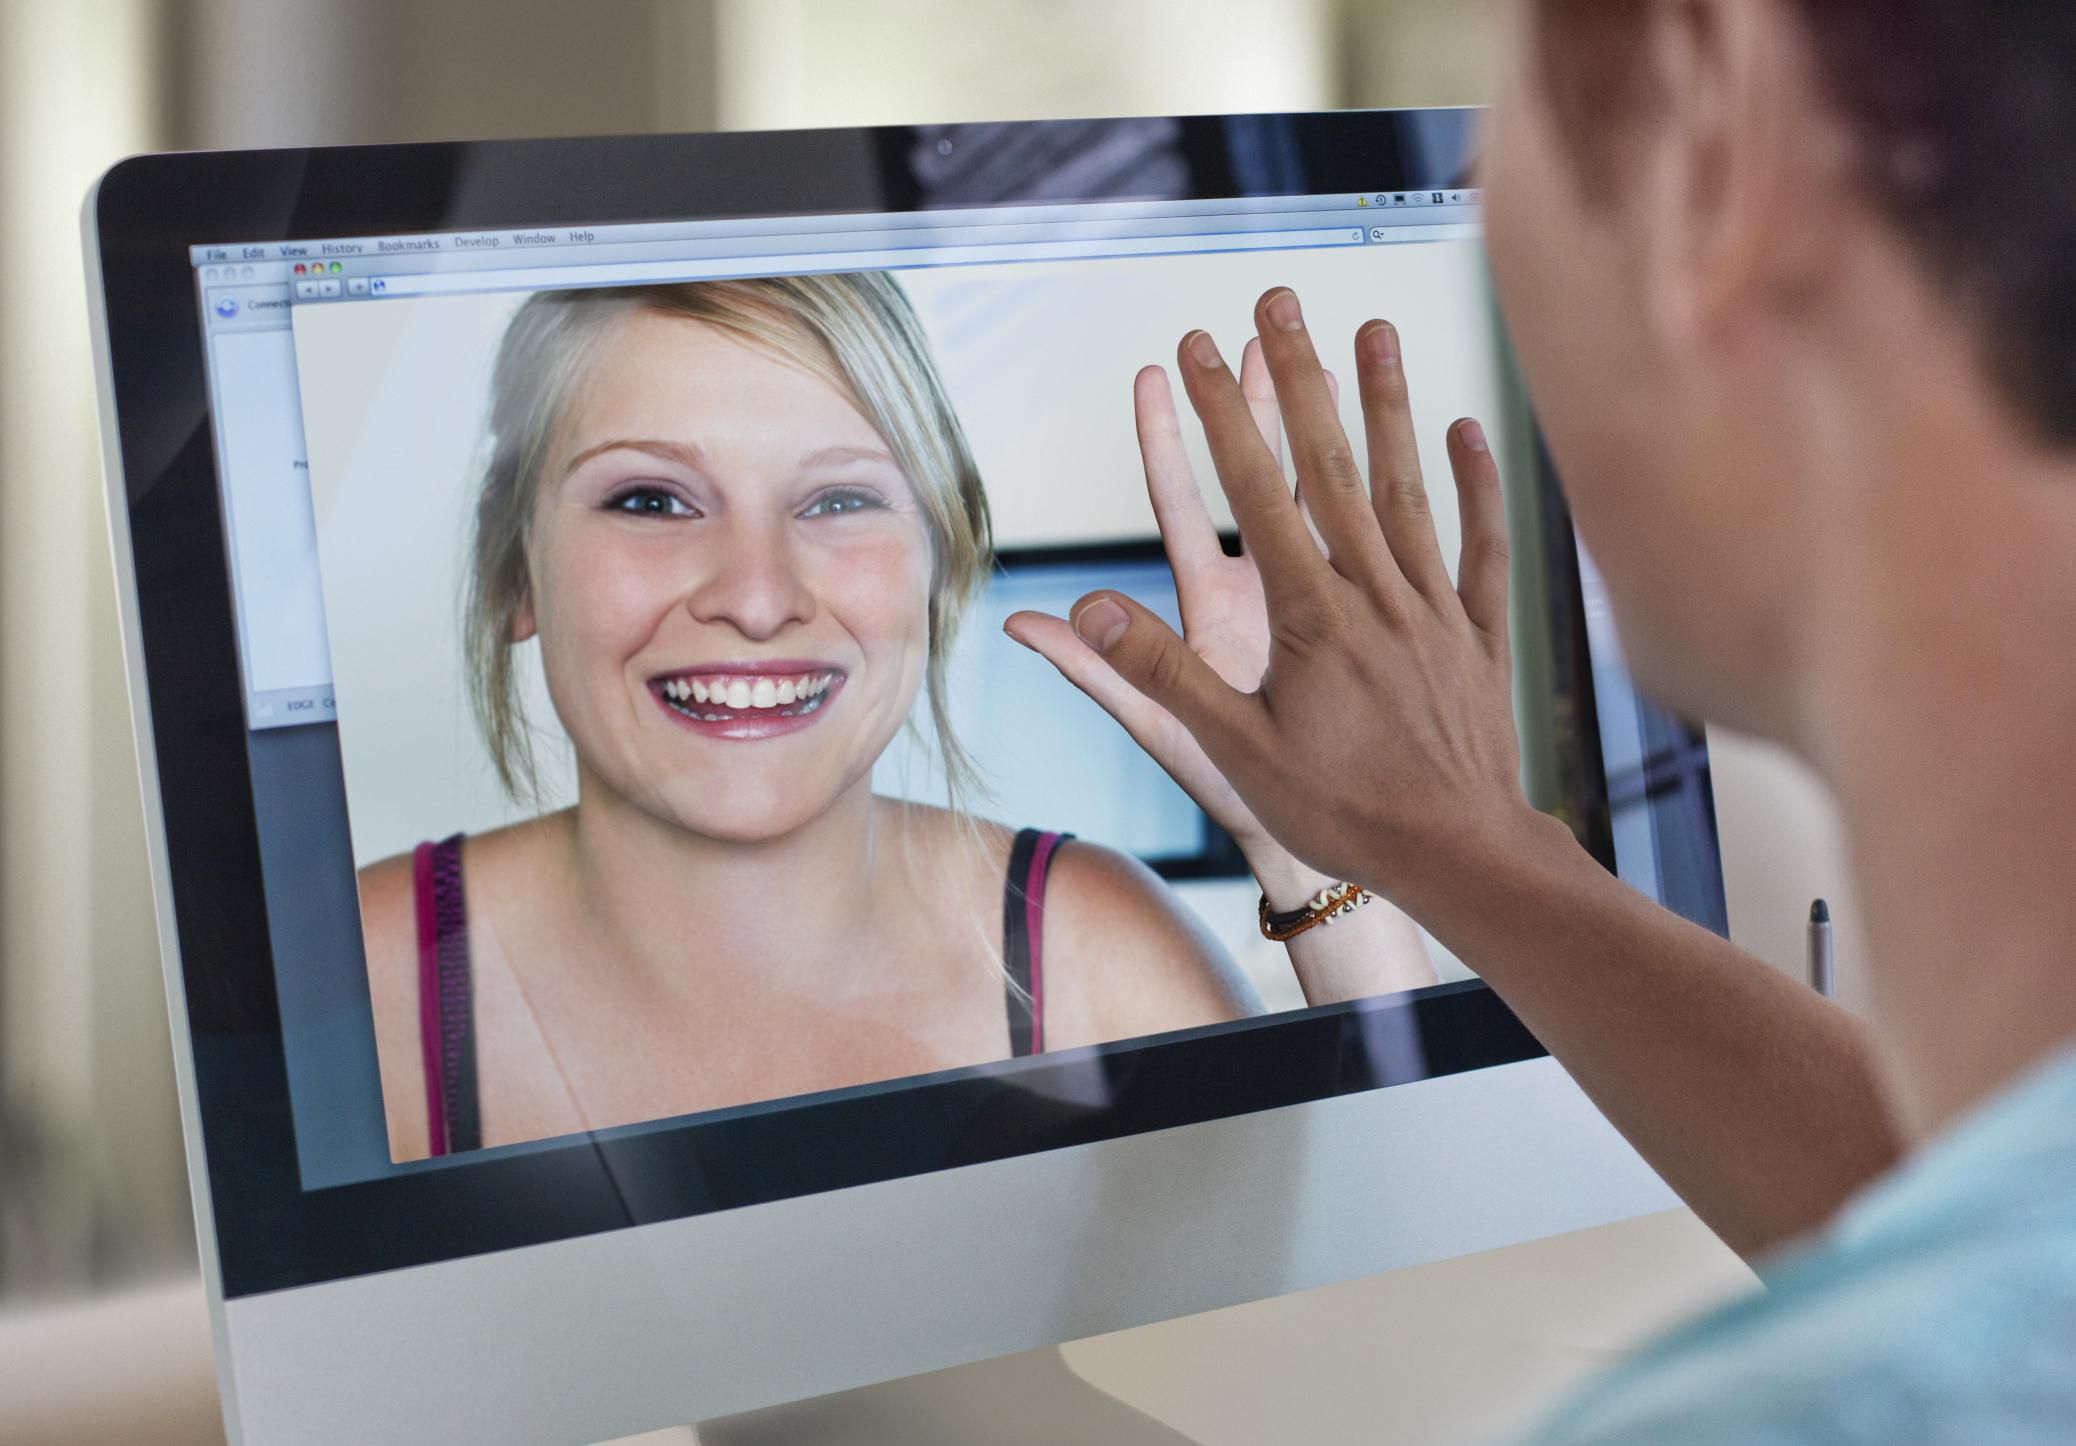 Apps for Free Video Chat on Your Computer